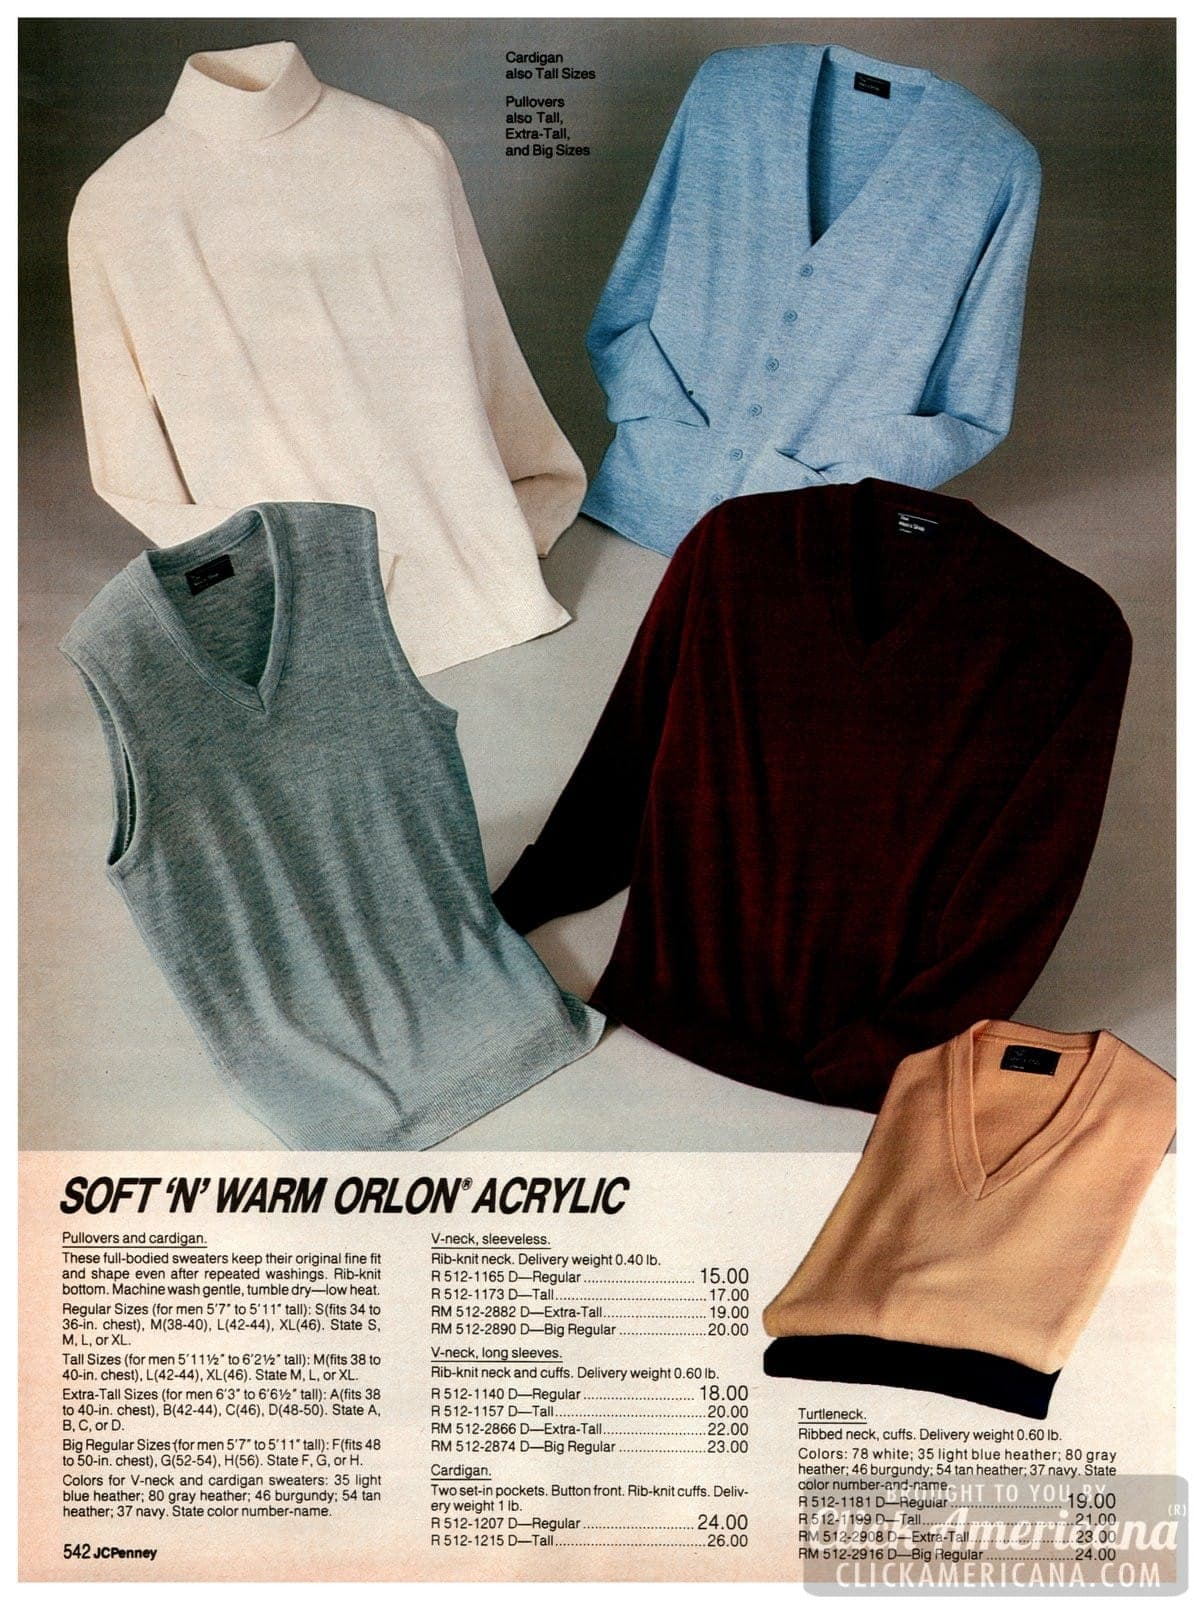 Soft 'n' warm Orlon acrylic pullovers, cardigans, V-neck sweaters and turtlenecks for men